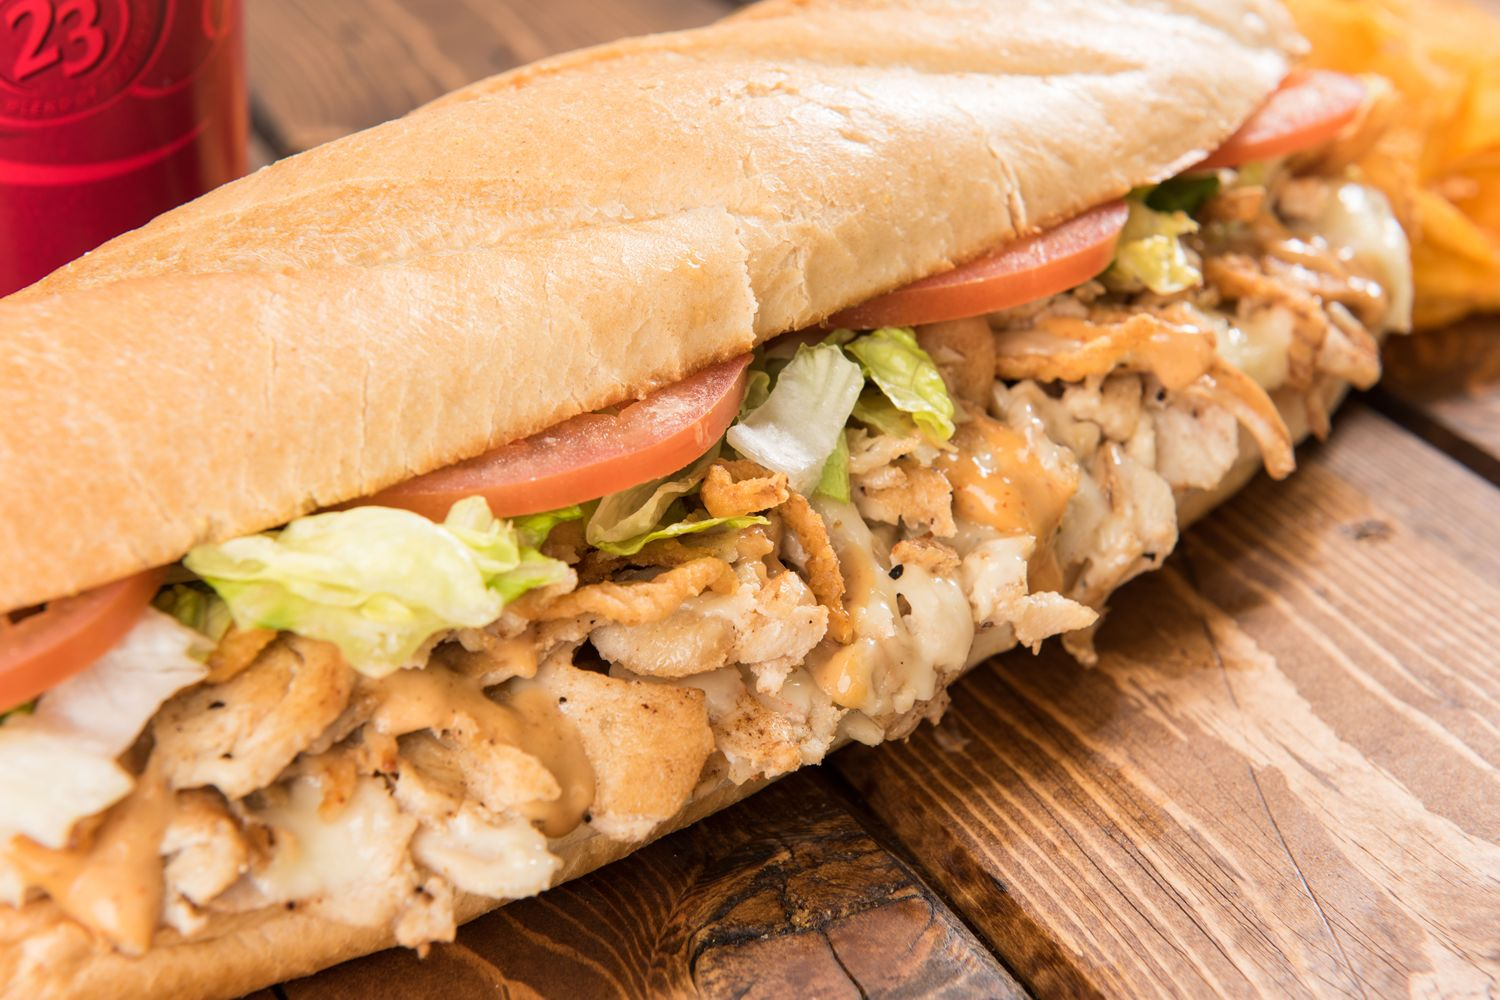 Capriotti's Sandwich Shop Introduces Chicken Chipotle Crunch Limited Time Offer